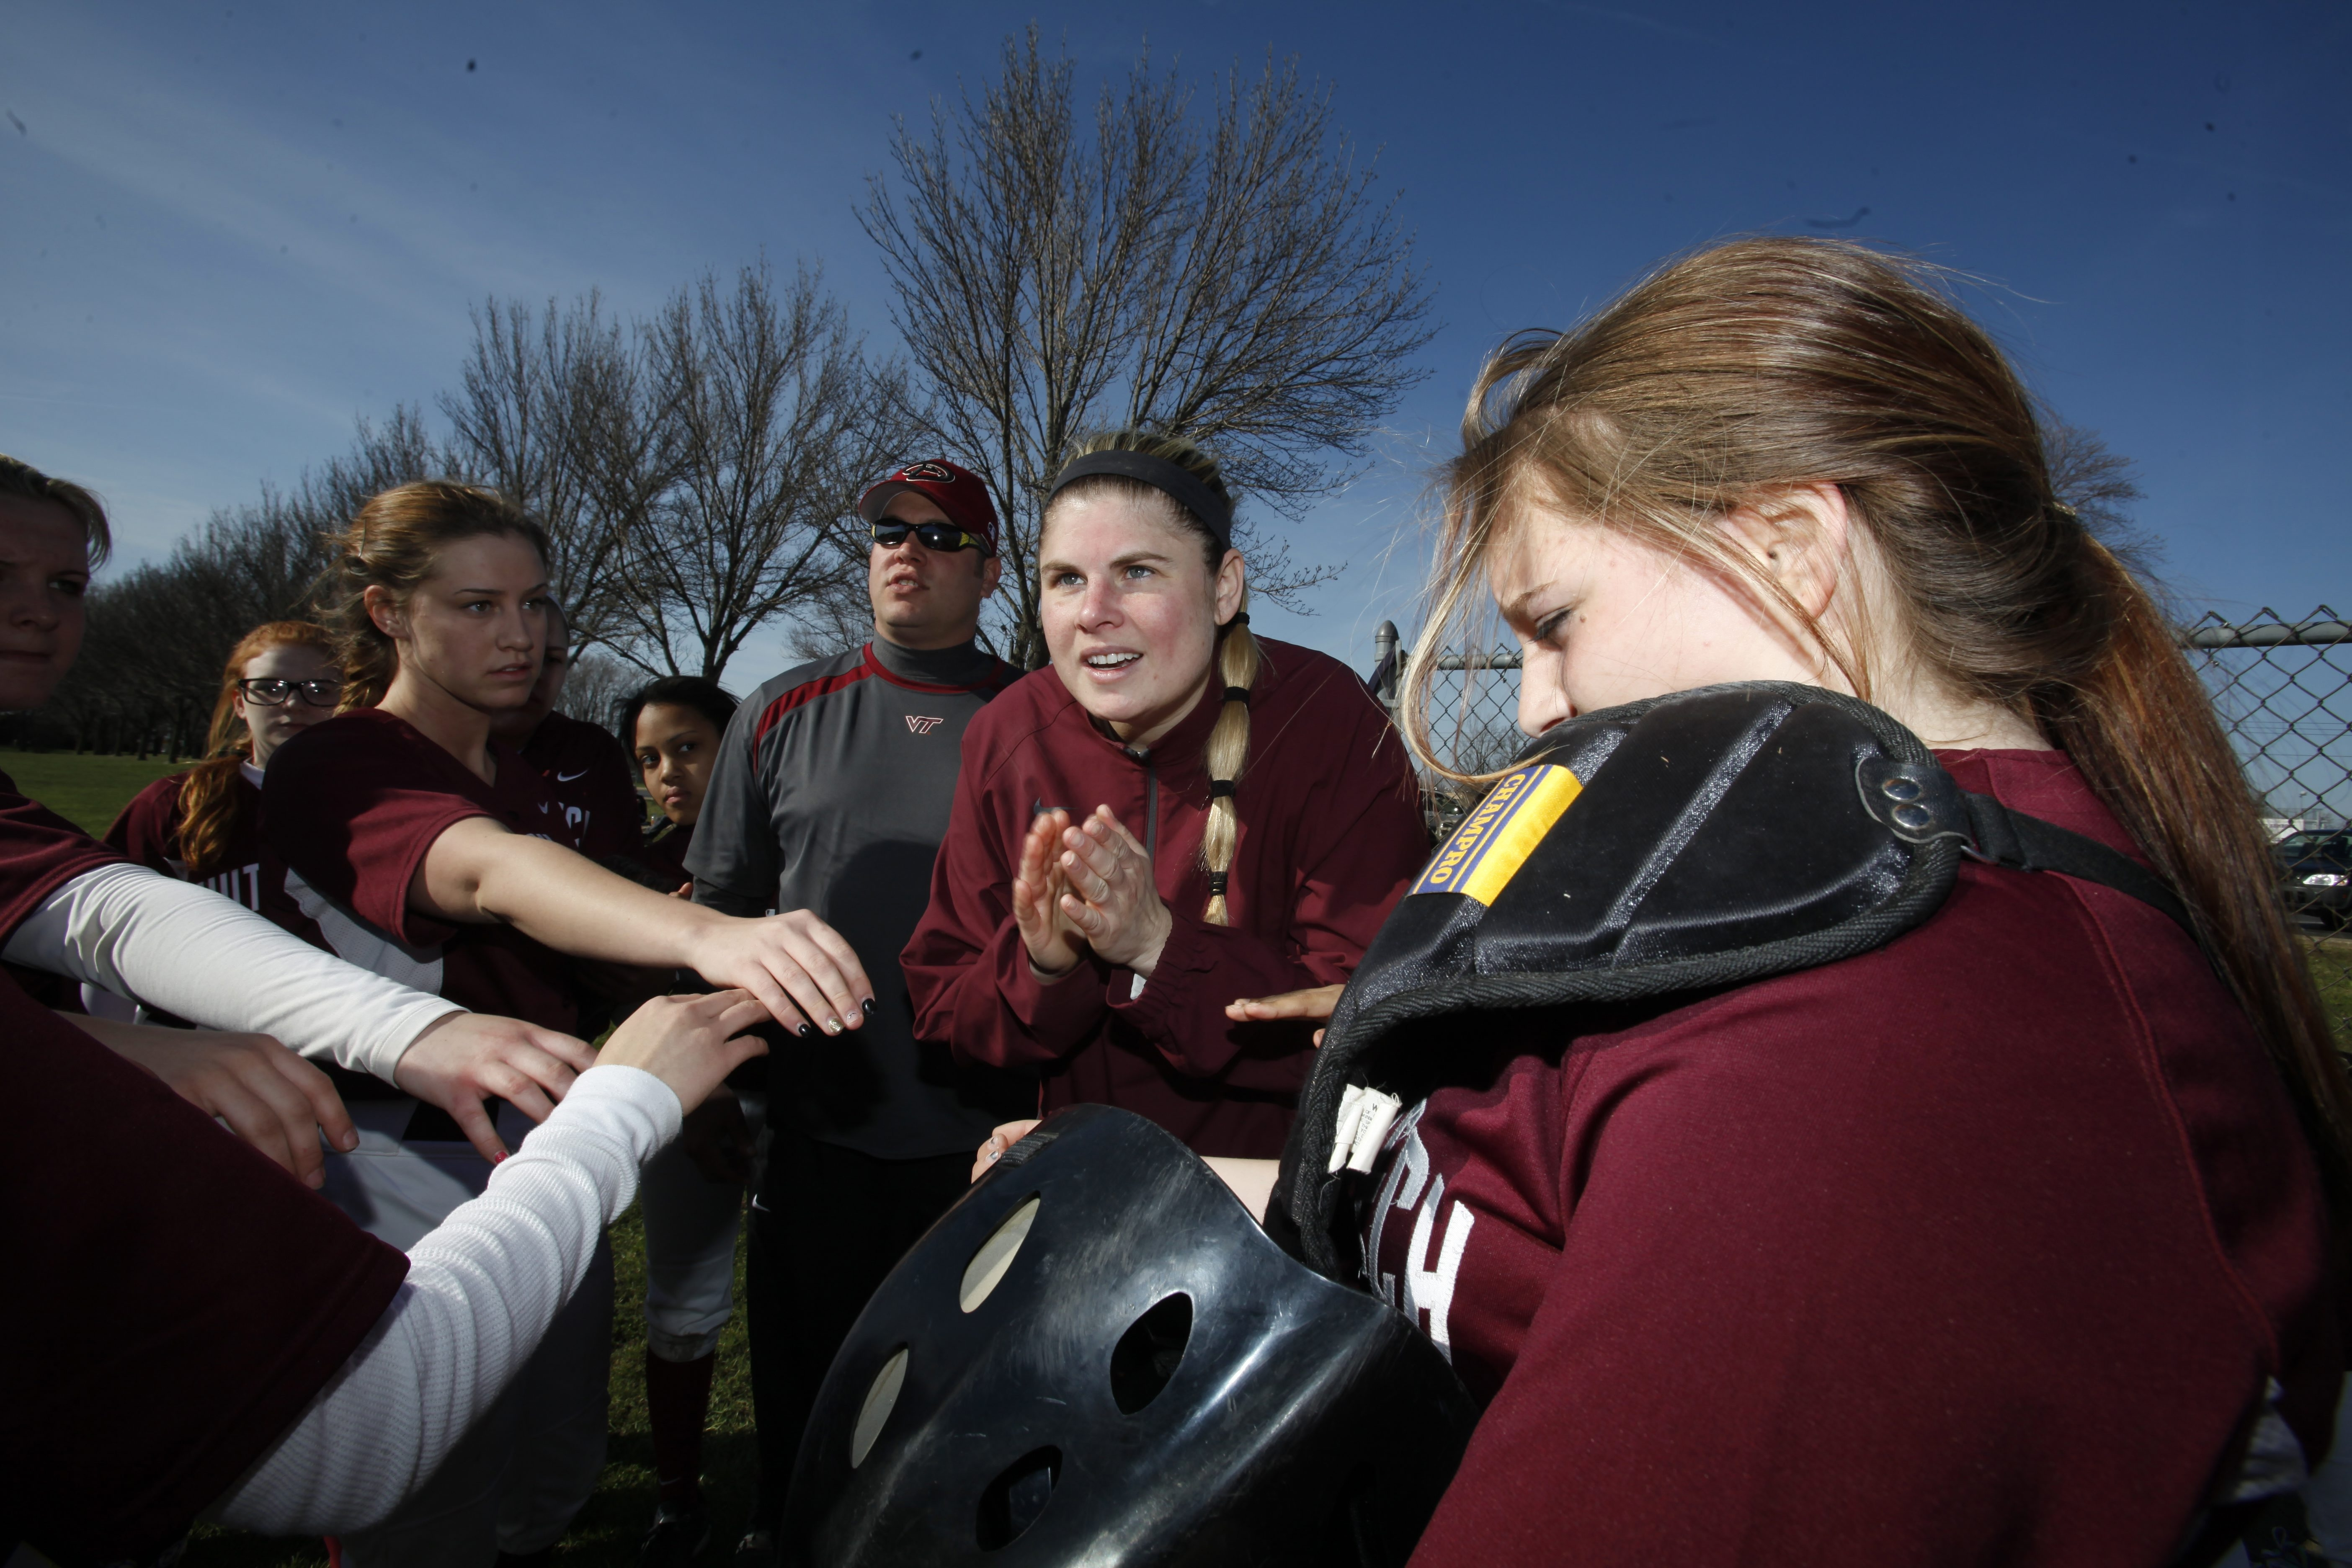 Kara Husband-Zimdahl brings years of experience playing softball at all levels to her first year as  head coach at Hutch Tech in the Buffalo Public Schools.